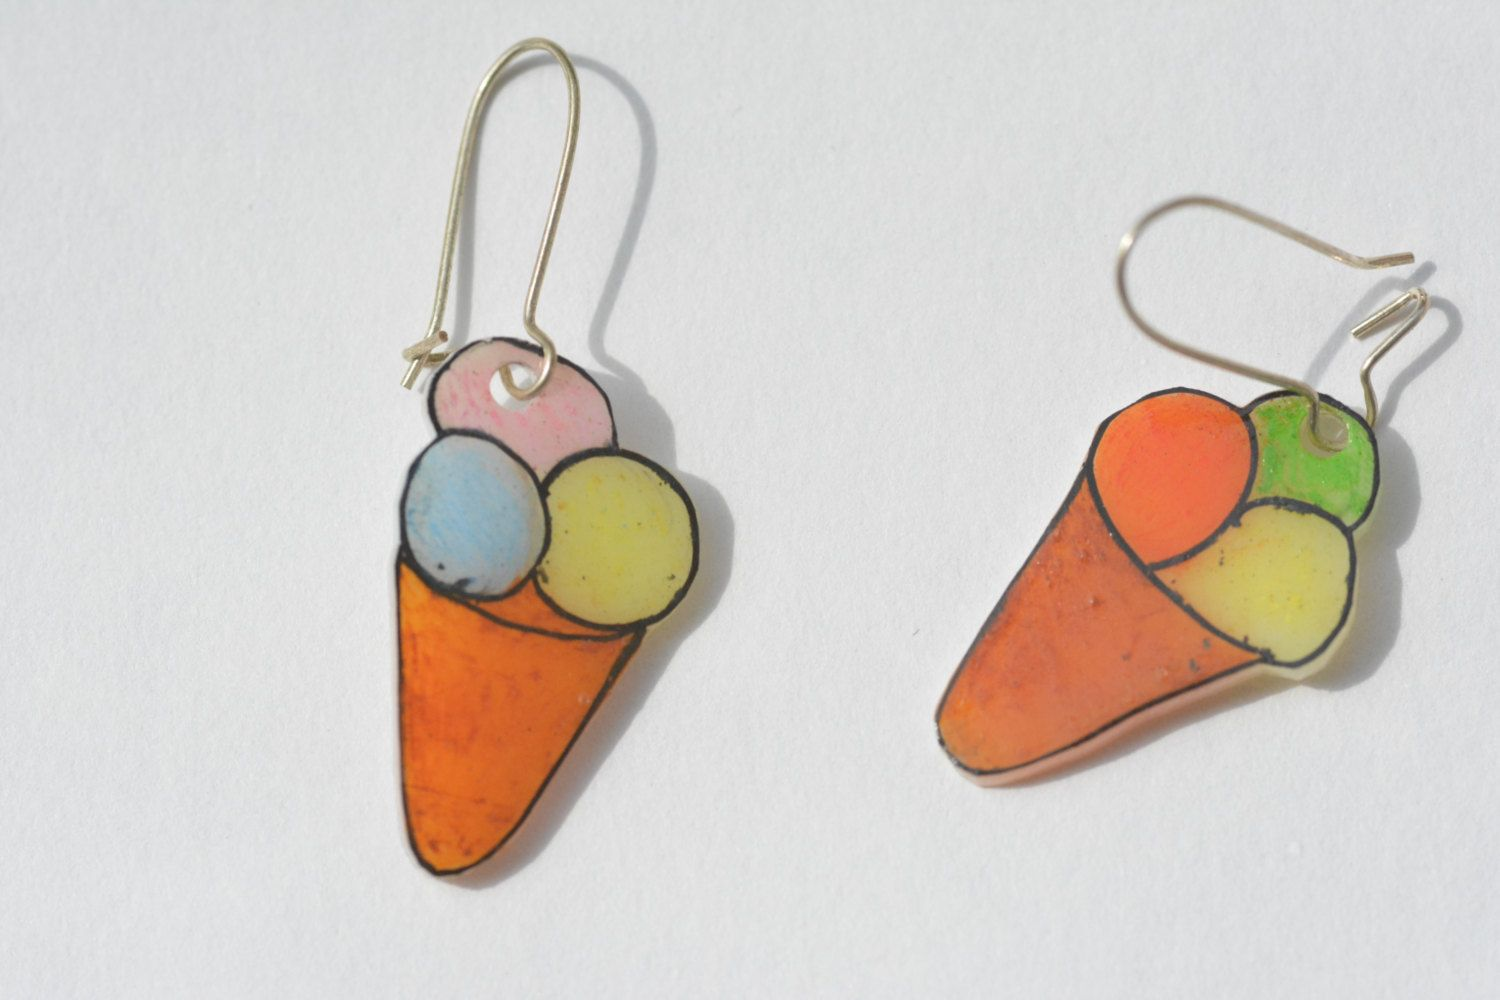 #Orecchini #gelato in #polyshrink. #Earrings #icecream in PolyShrink di #LabLiu su #Etsy